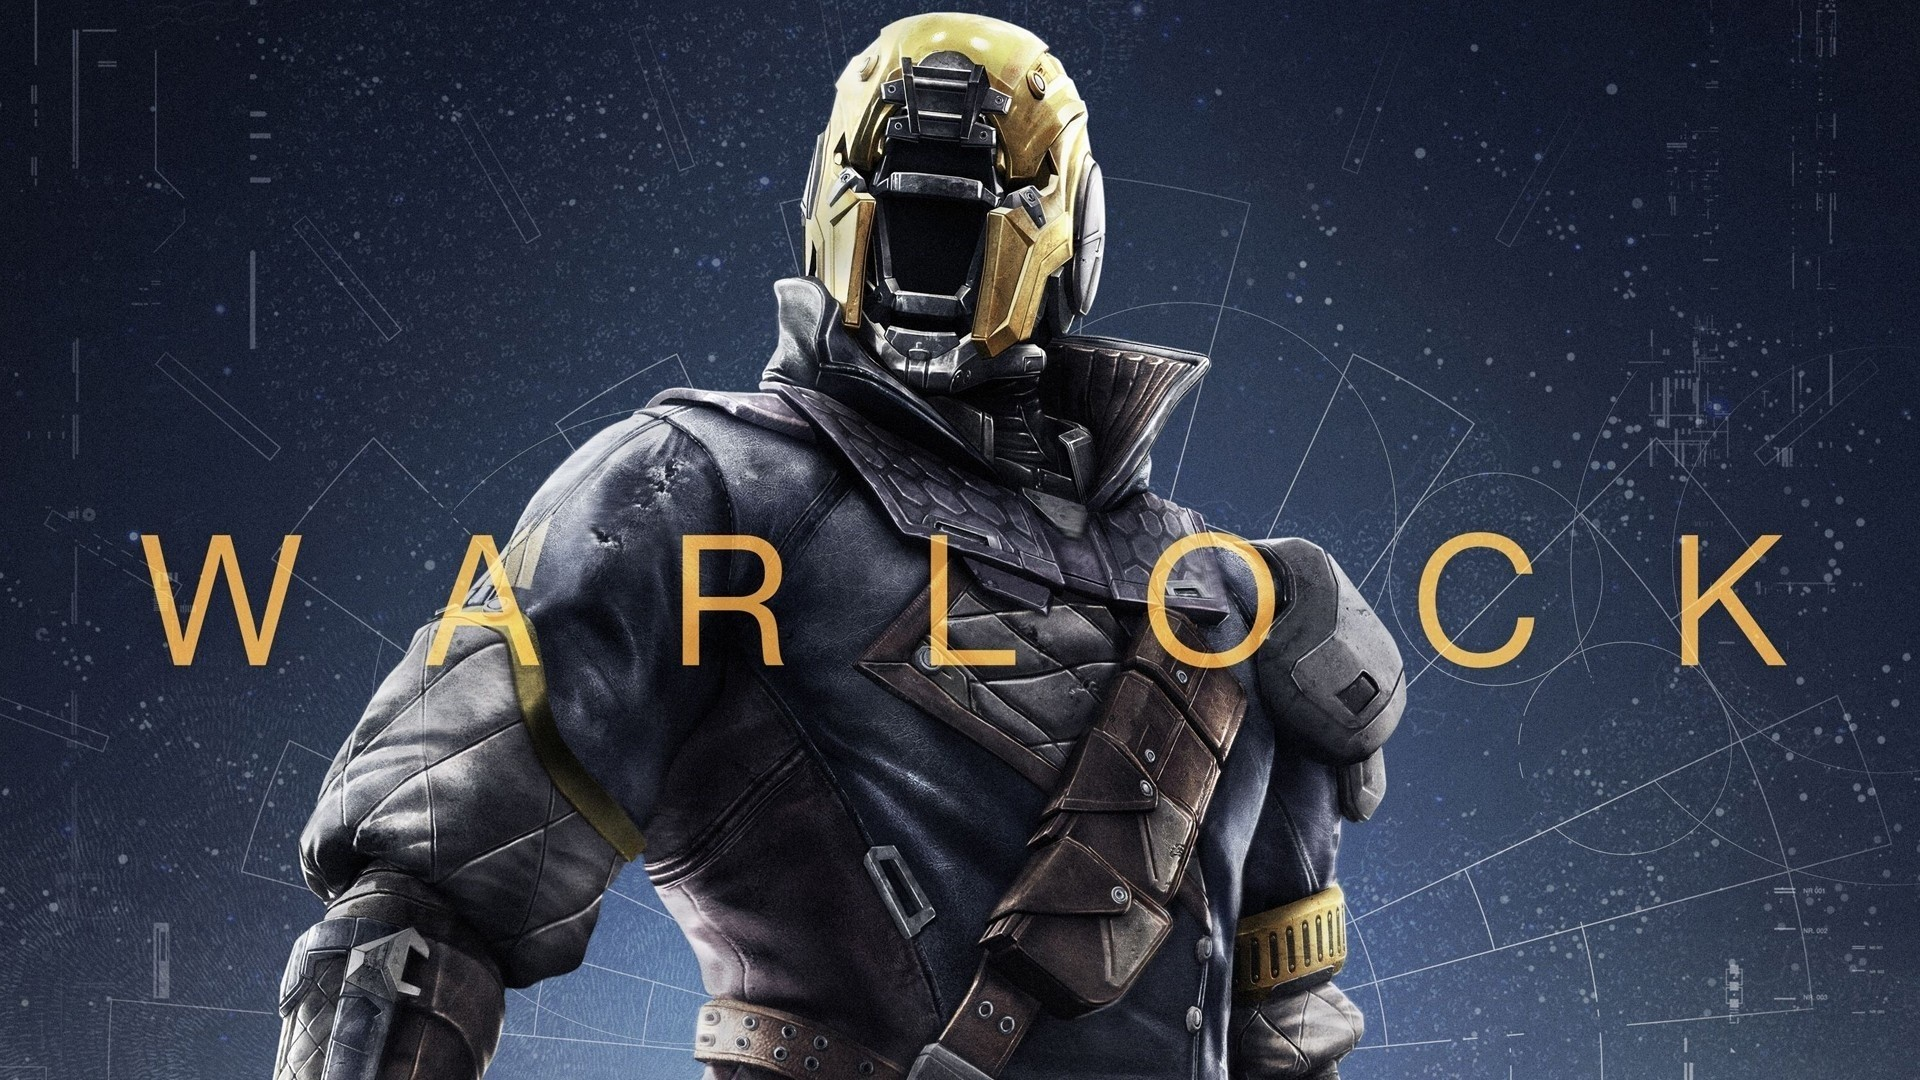 Wallpaper Warlock of the game Destiny